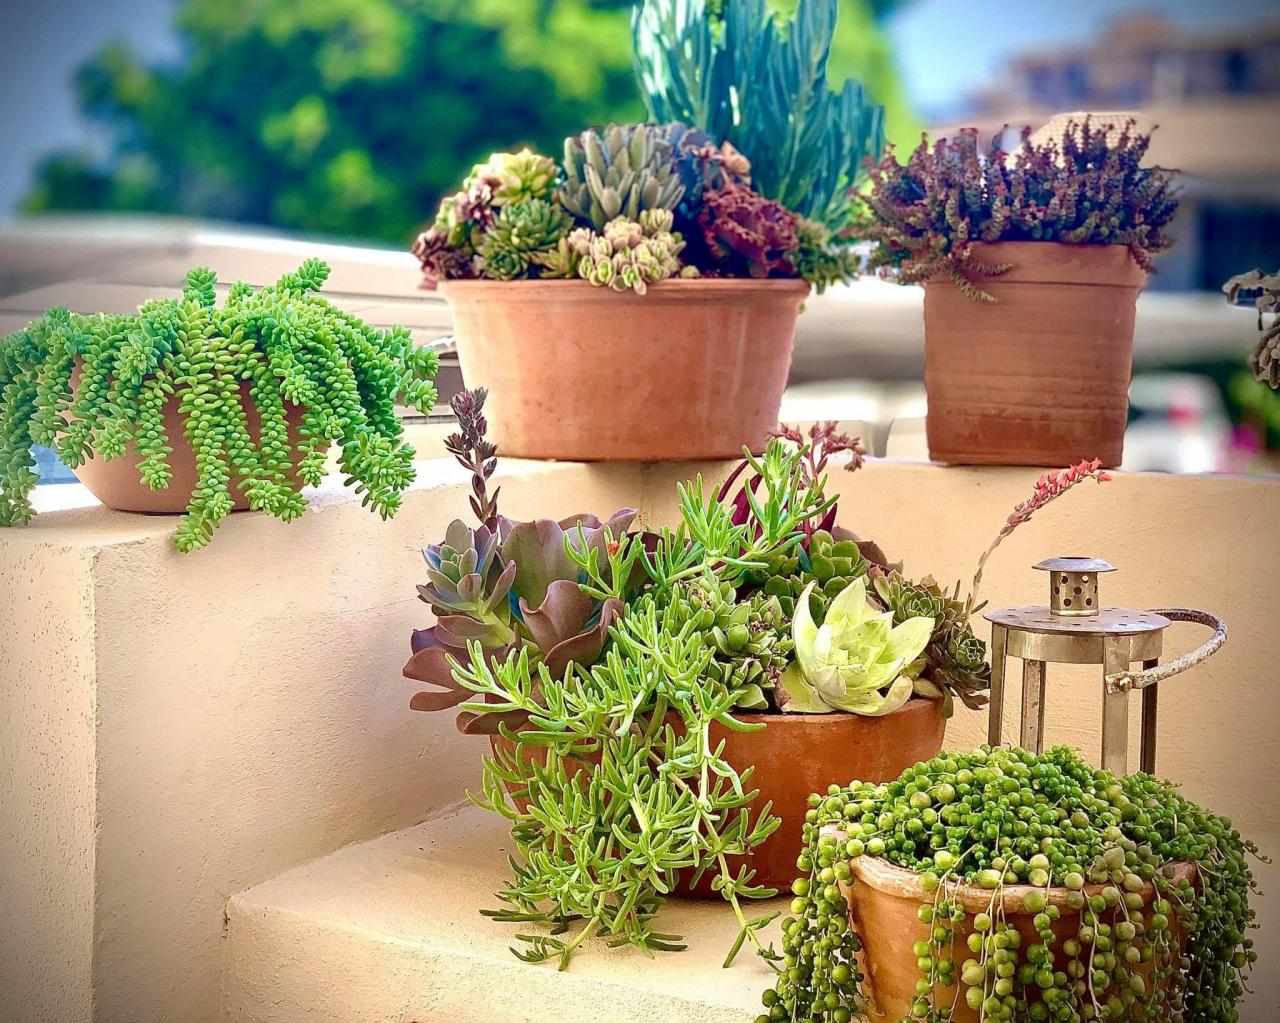 Claudia Kruppel shared succulent gardens with us